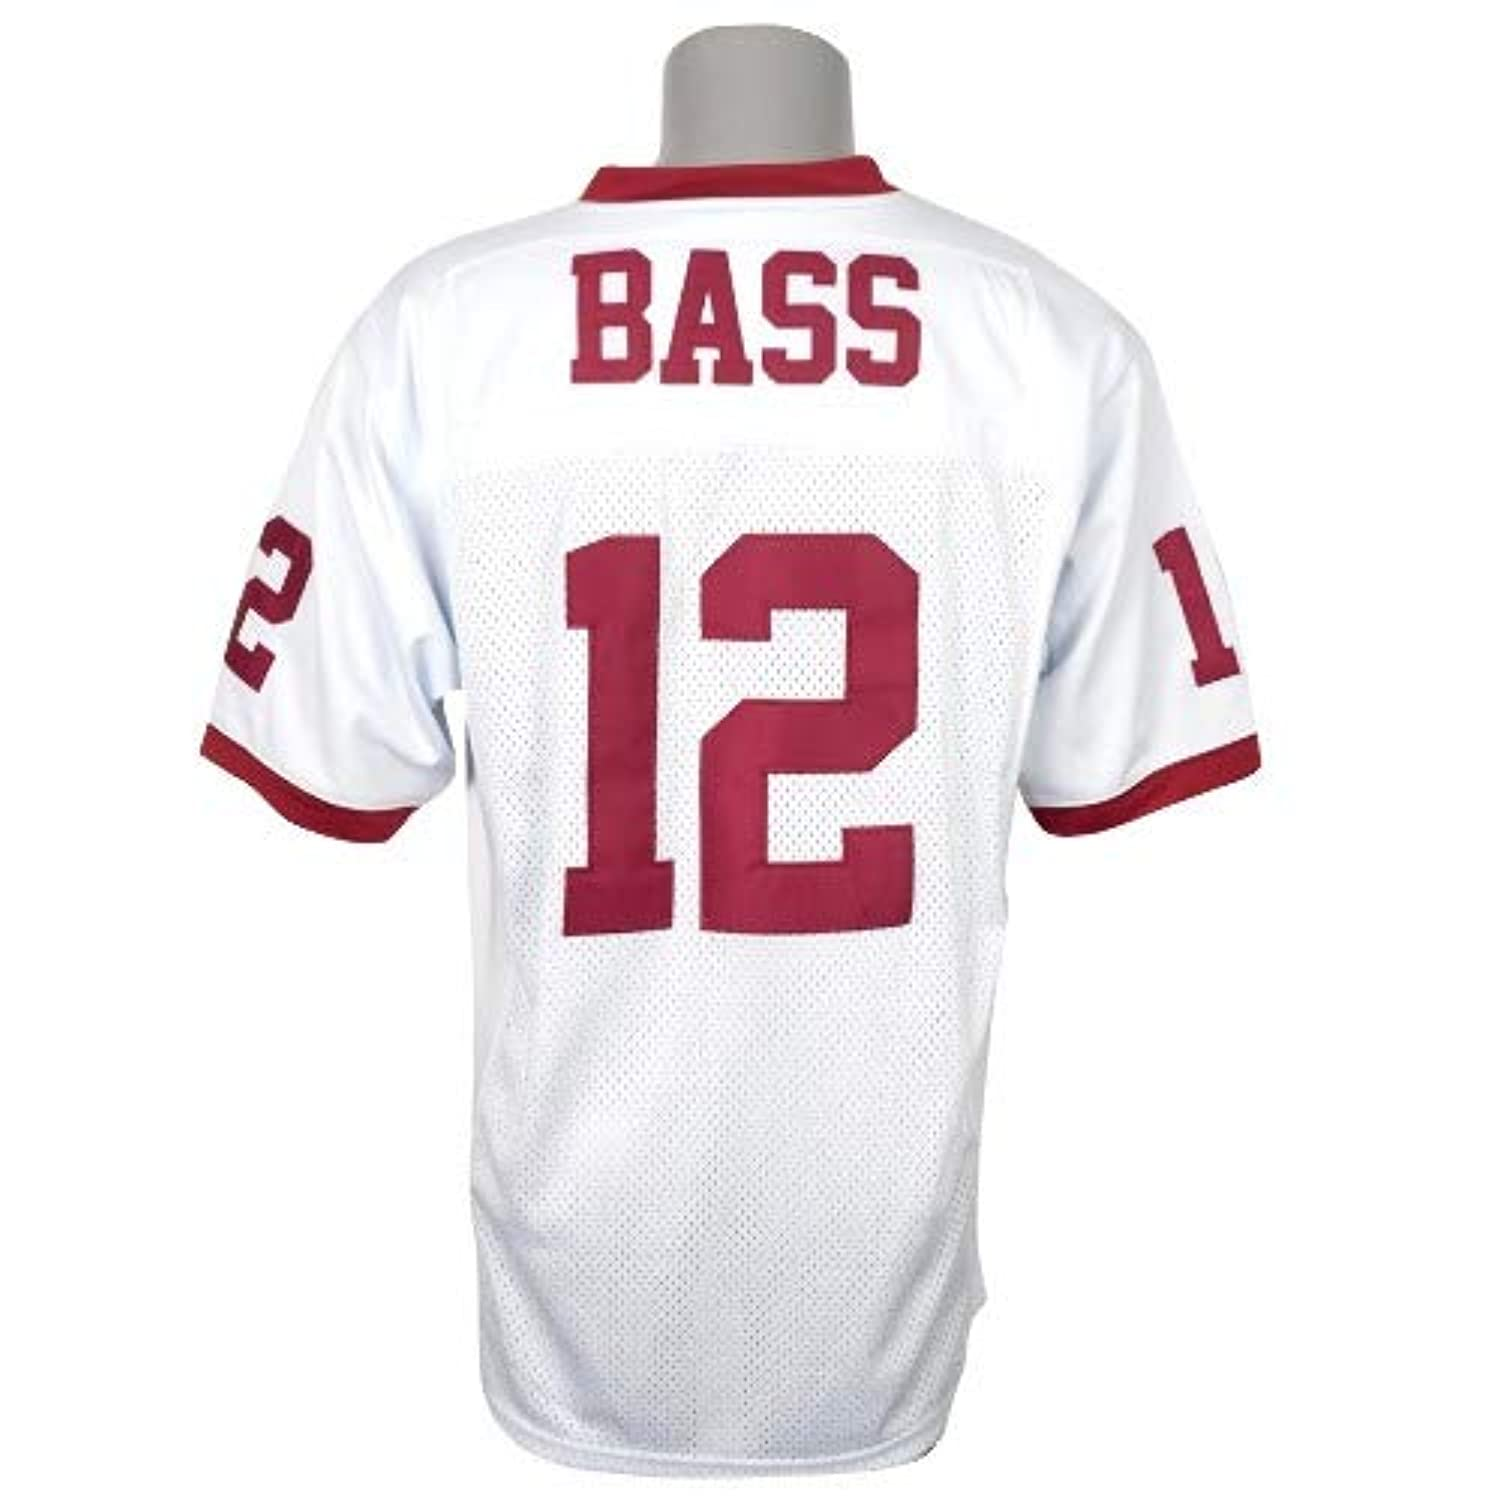 NFL Remember the Titans/T.C. Williams Titans Ronnie Bass #12 映画タイタンを忘れない 劇中ユニフォーム (ホワイト)